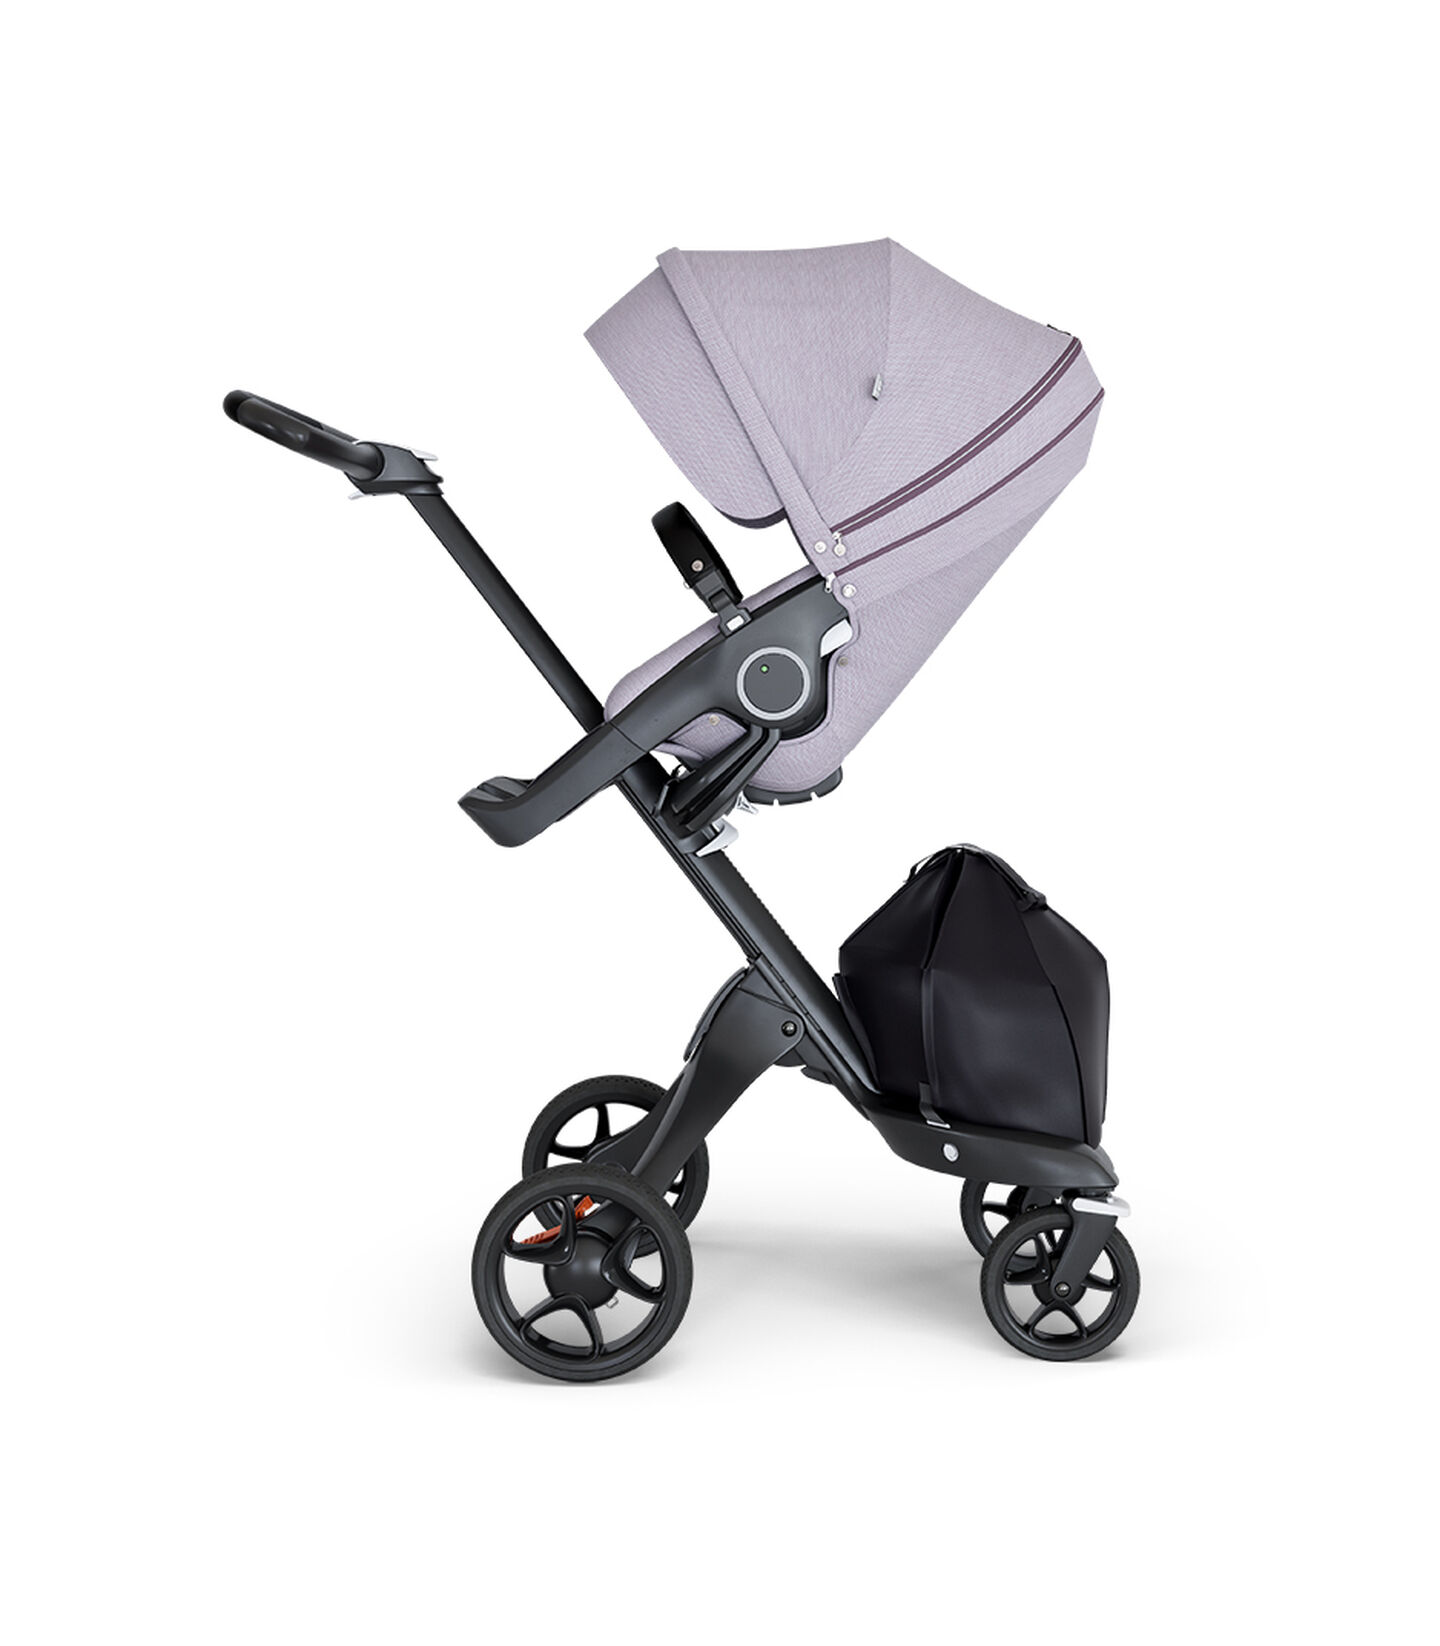 Stokke® Xplory® wtih Black Chassis and Leatherette Black handle. Stokke® Stroller Seat Brushed Lilac.